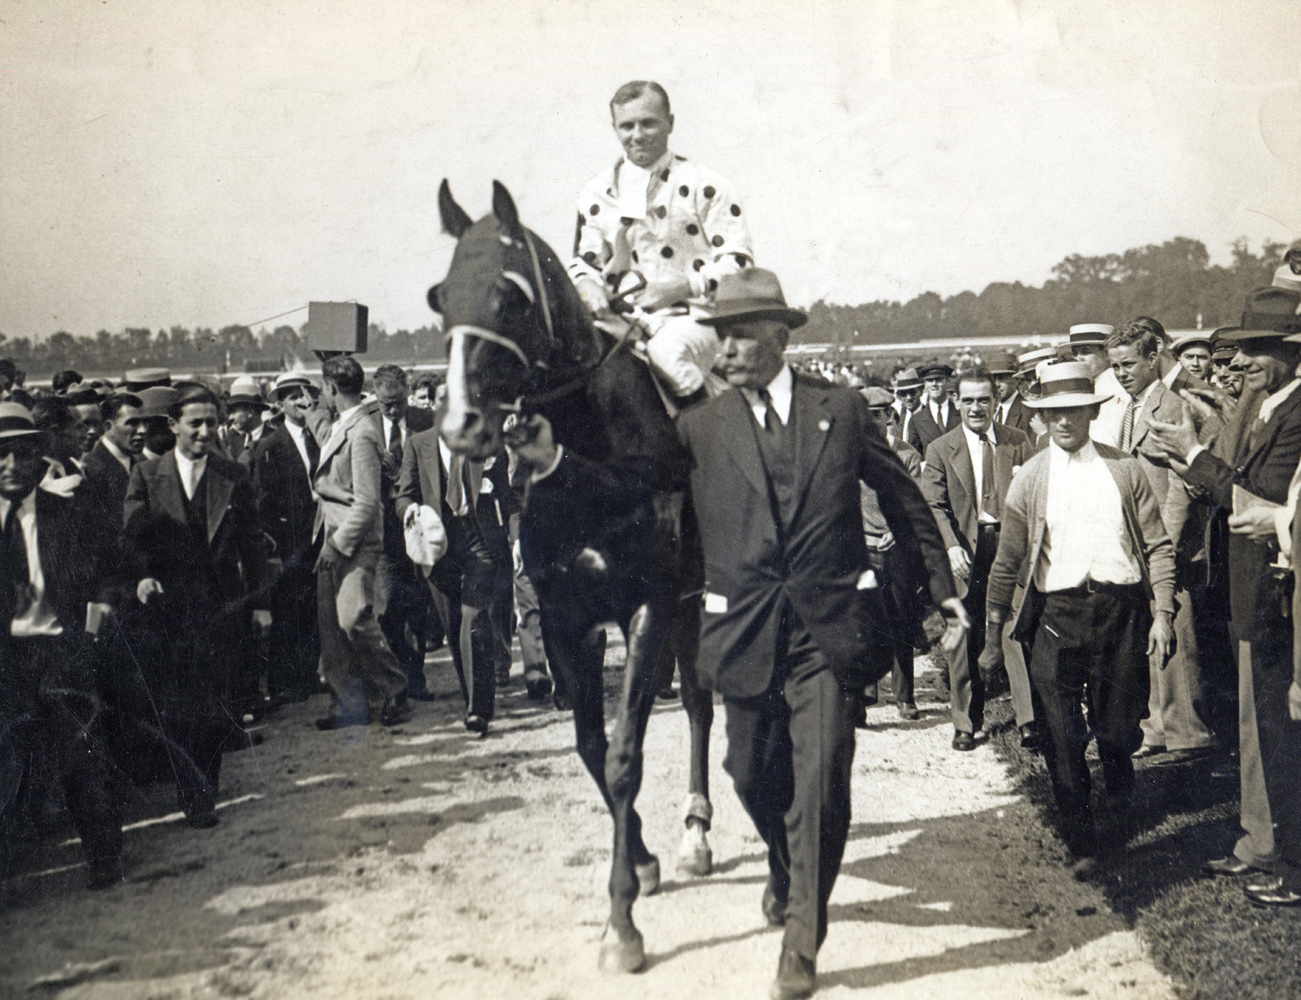 William Woodward, Sr. leads in Gallant Fox (Earl Sande up) after winning the 1930 Lawrence Realization at Belmont Park (Pictorial Press Photos/Museum Collection)